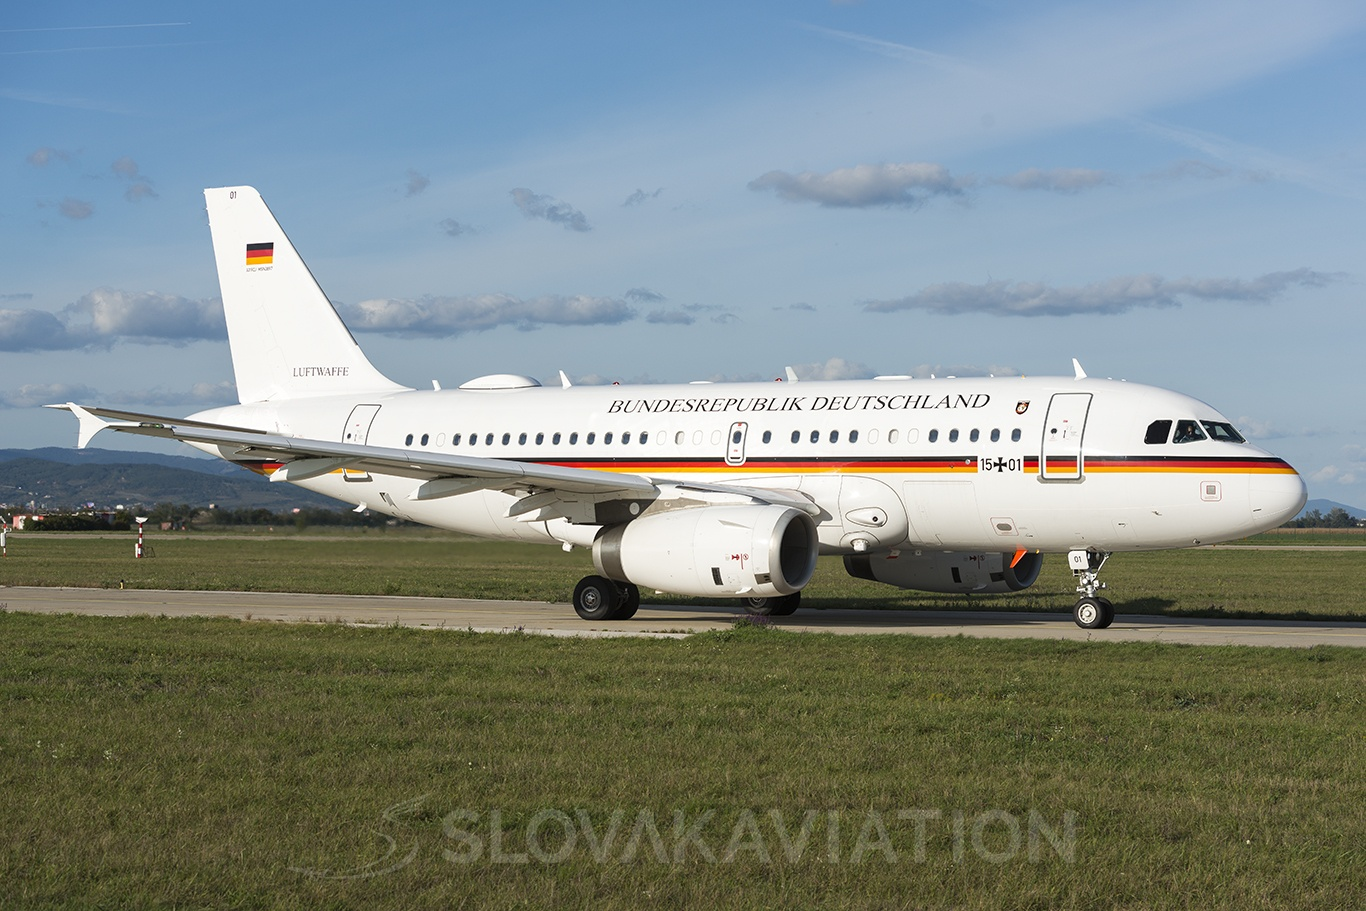 Germany - Air Force Airbus A319 15-01